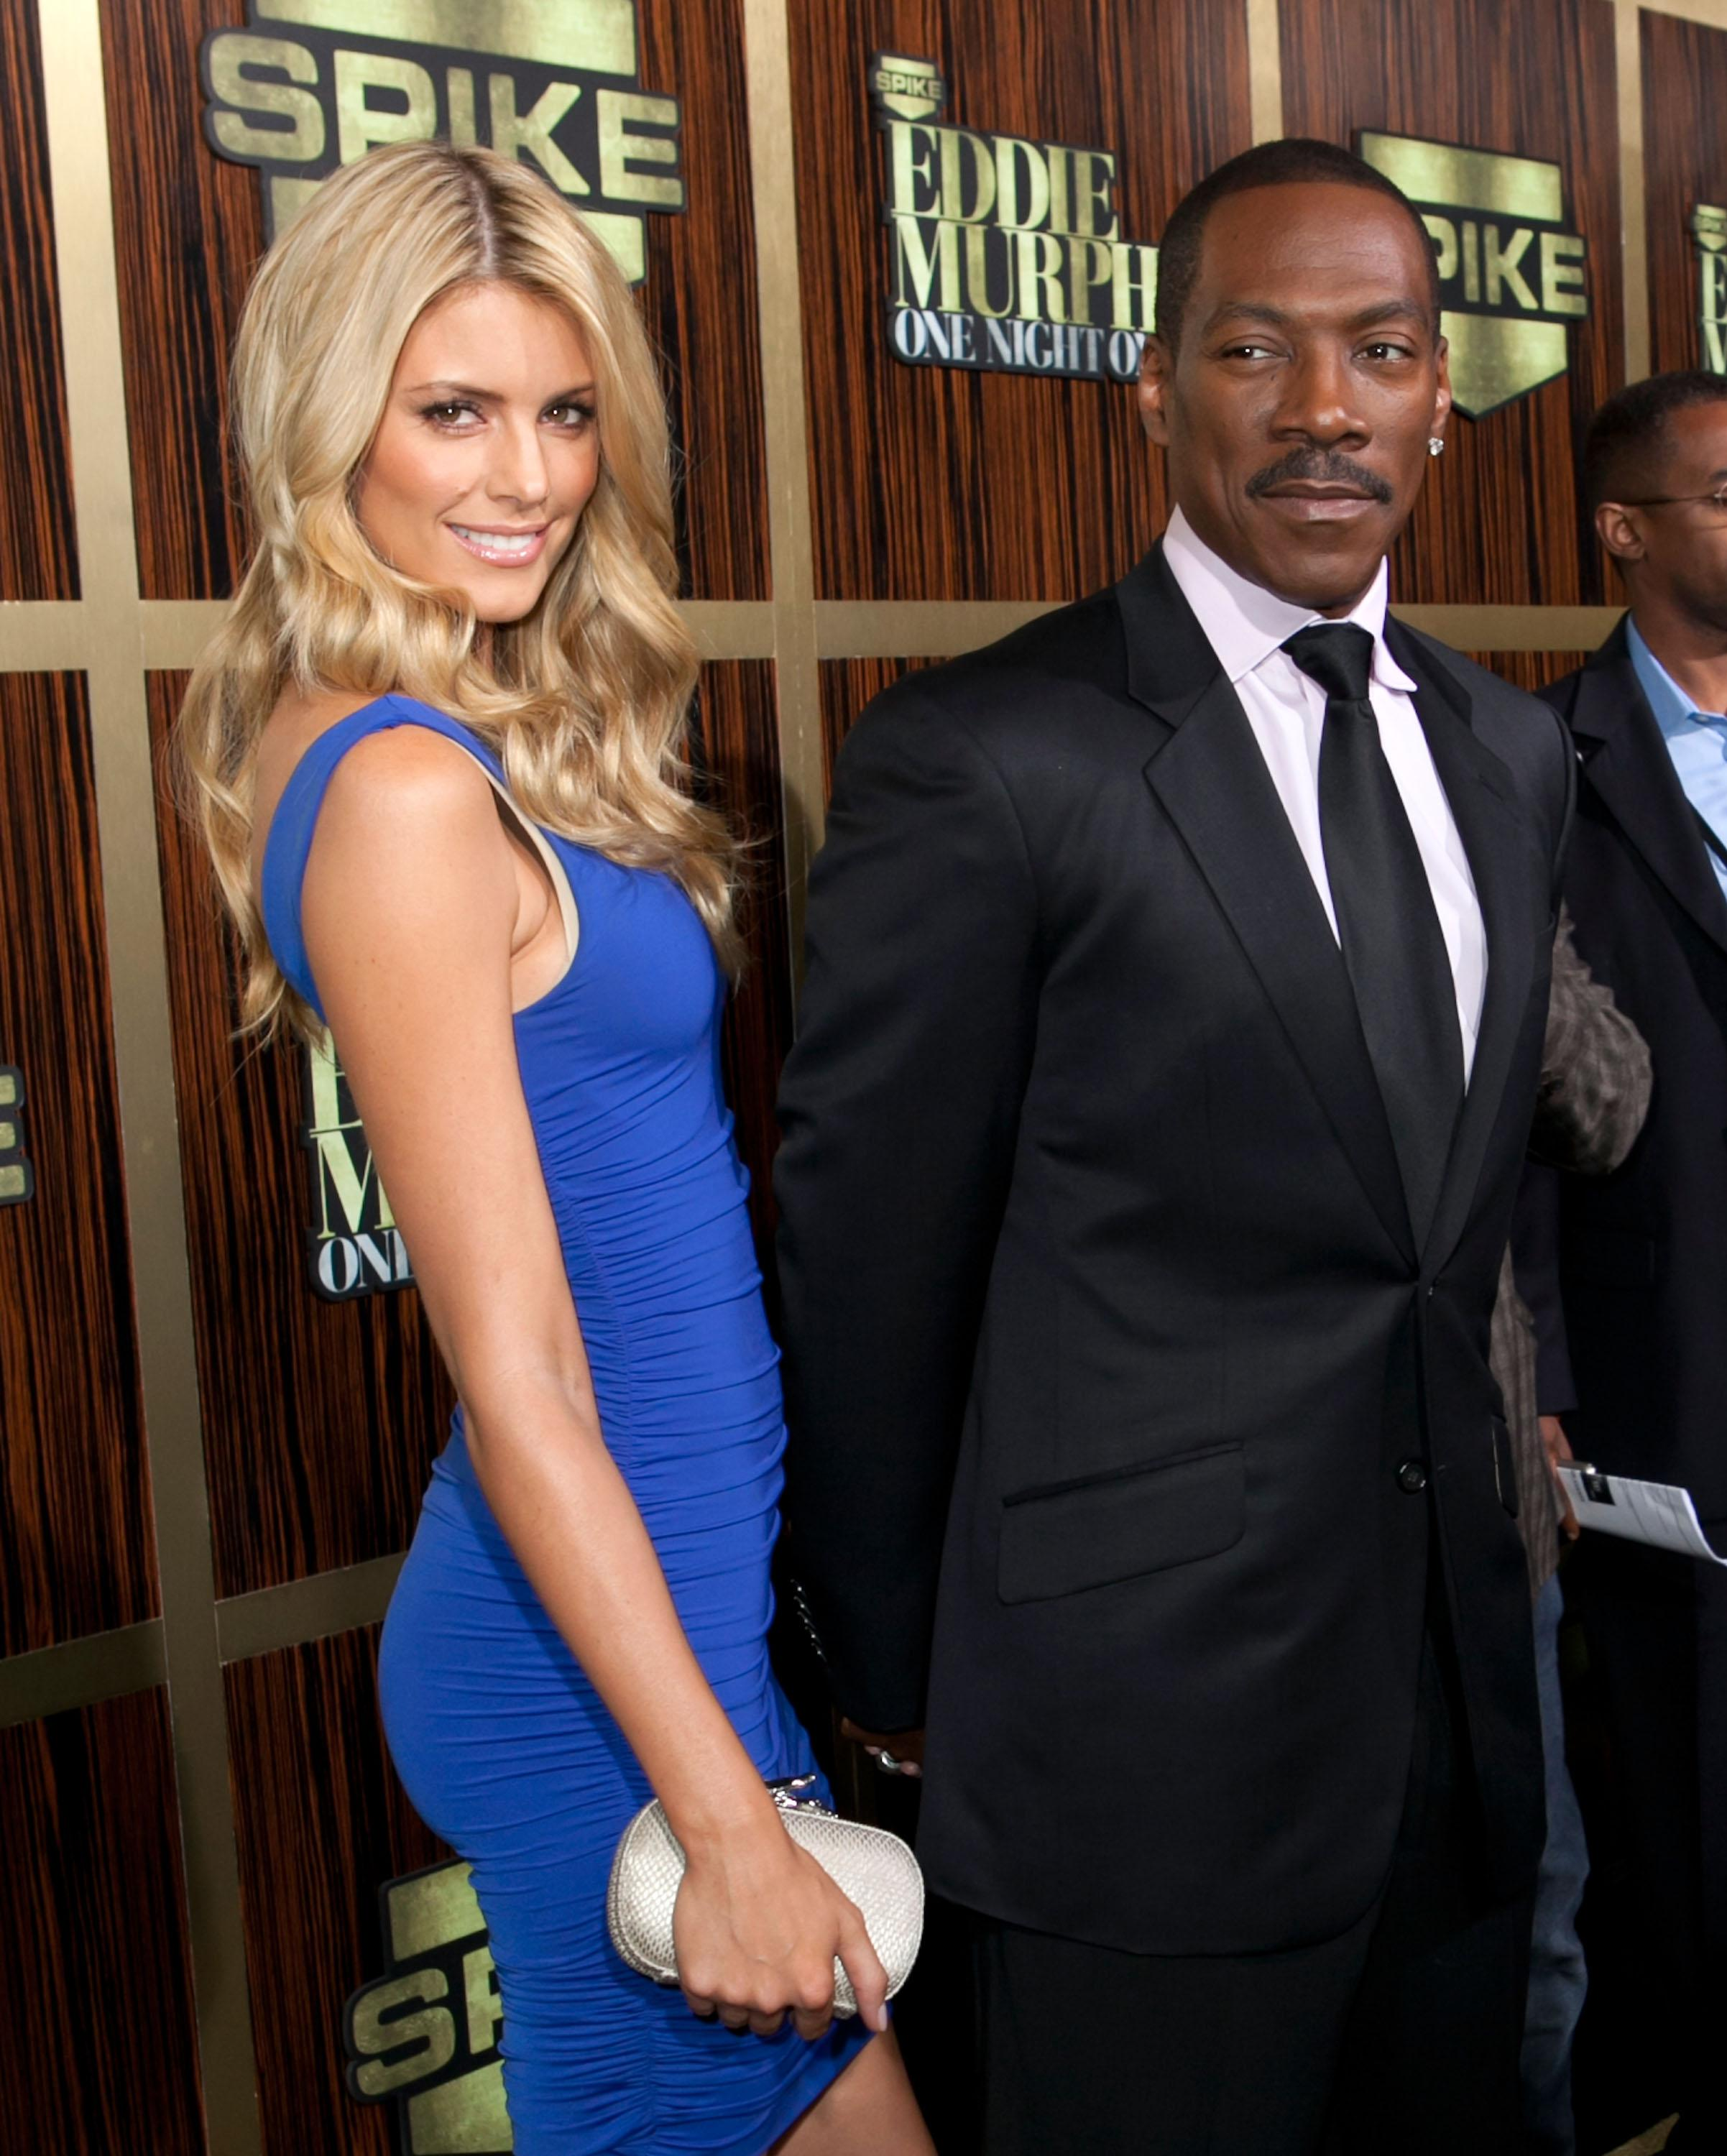 Spike TV's 'Eddie Murphy: One Night Only' - Arrivals